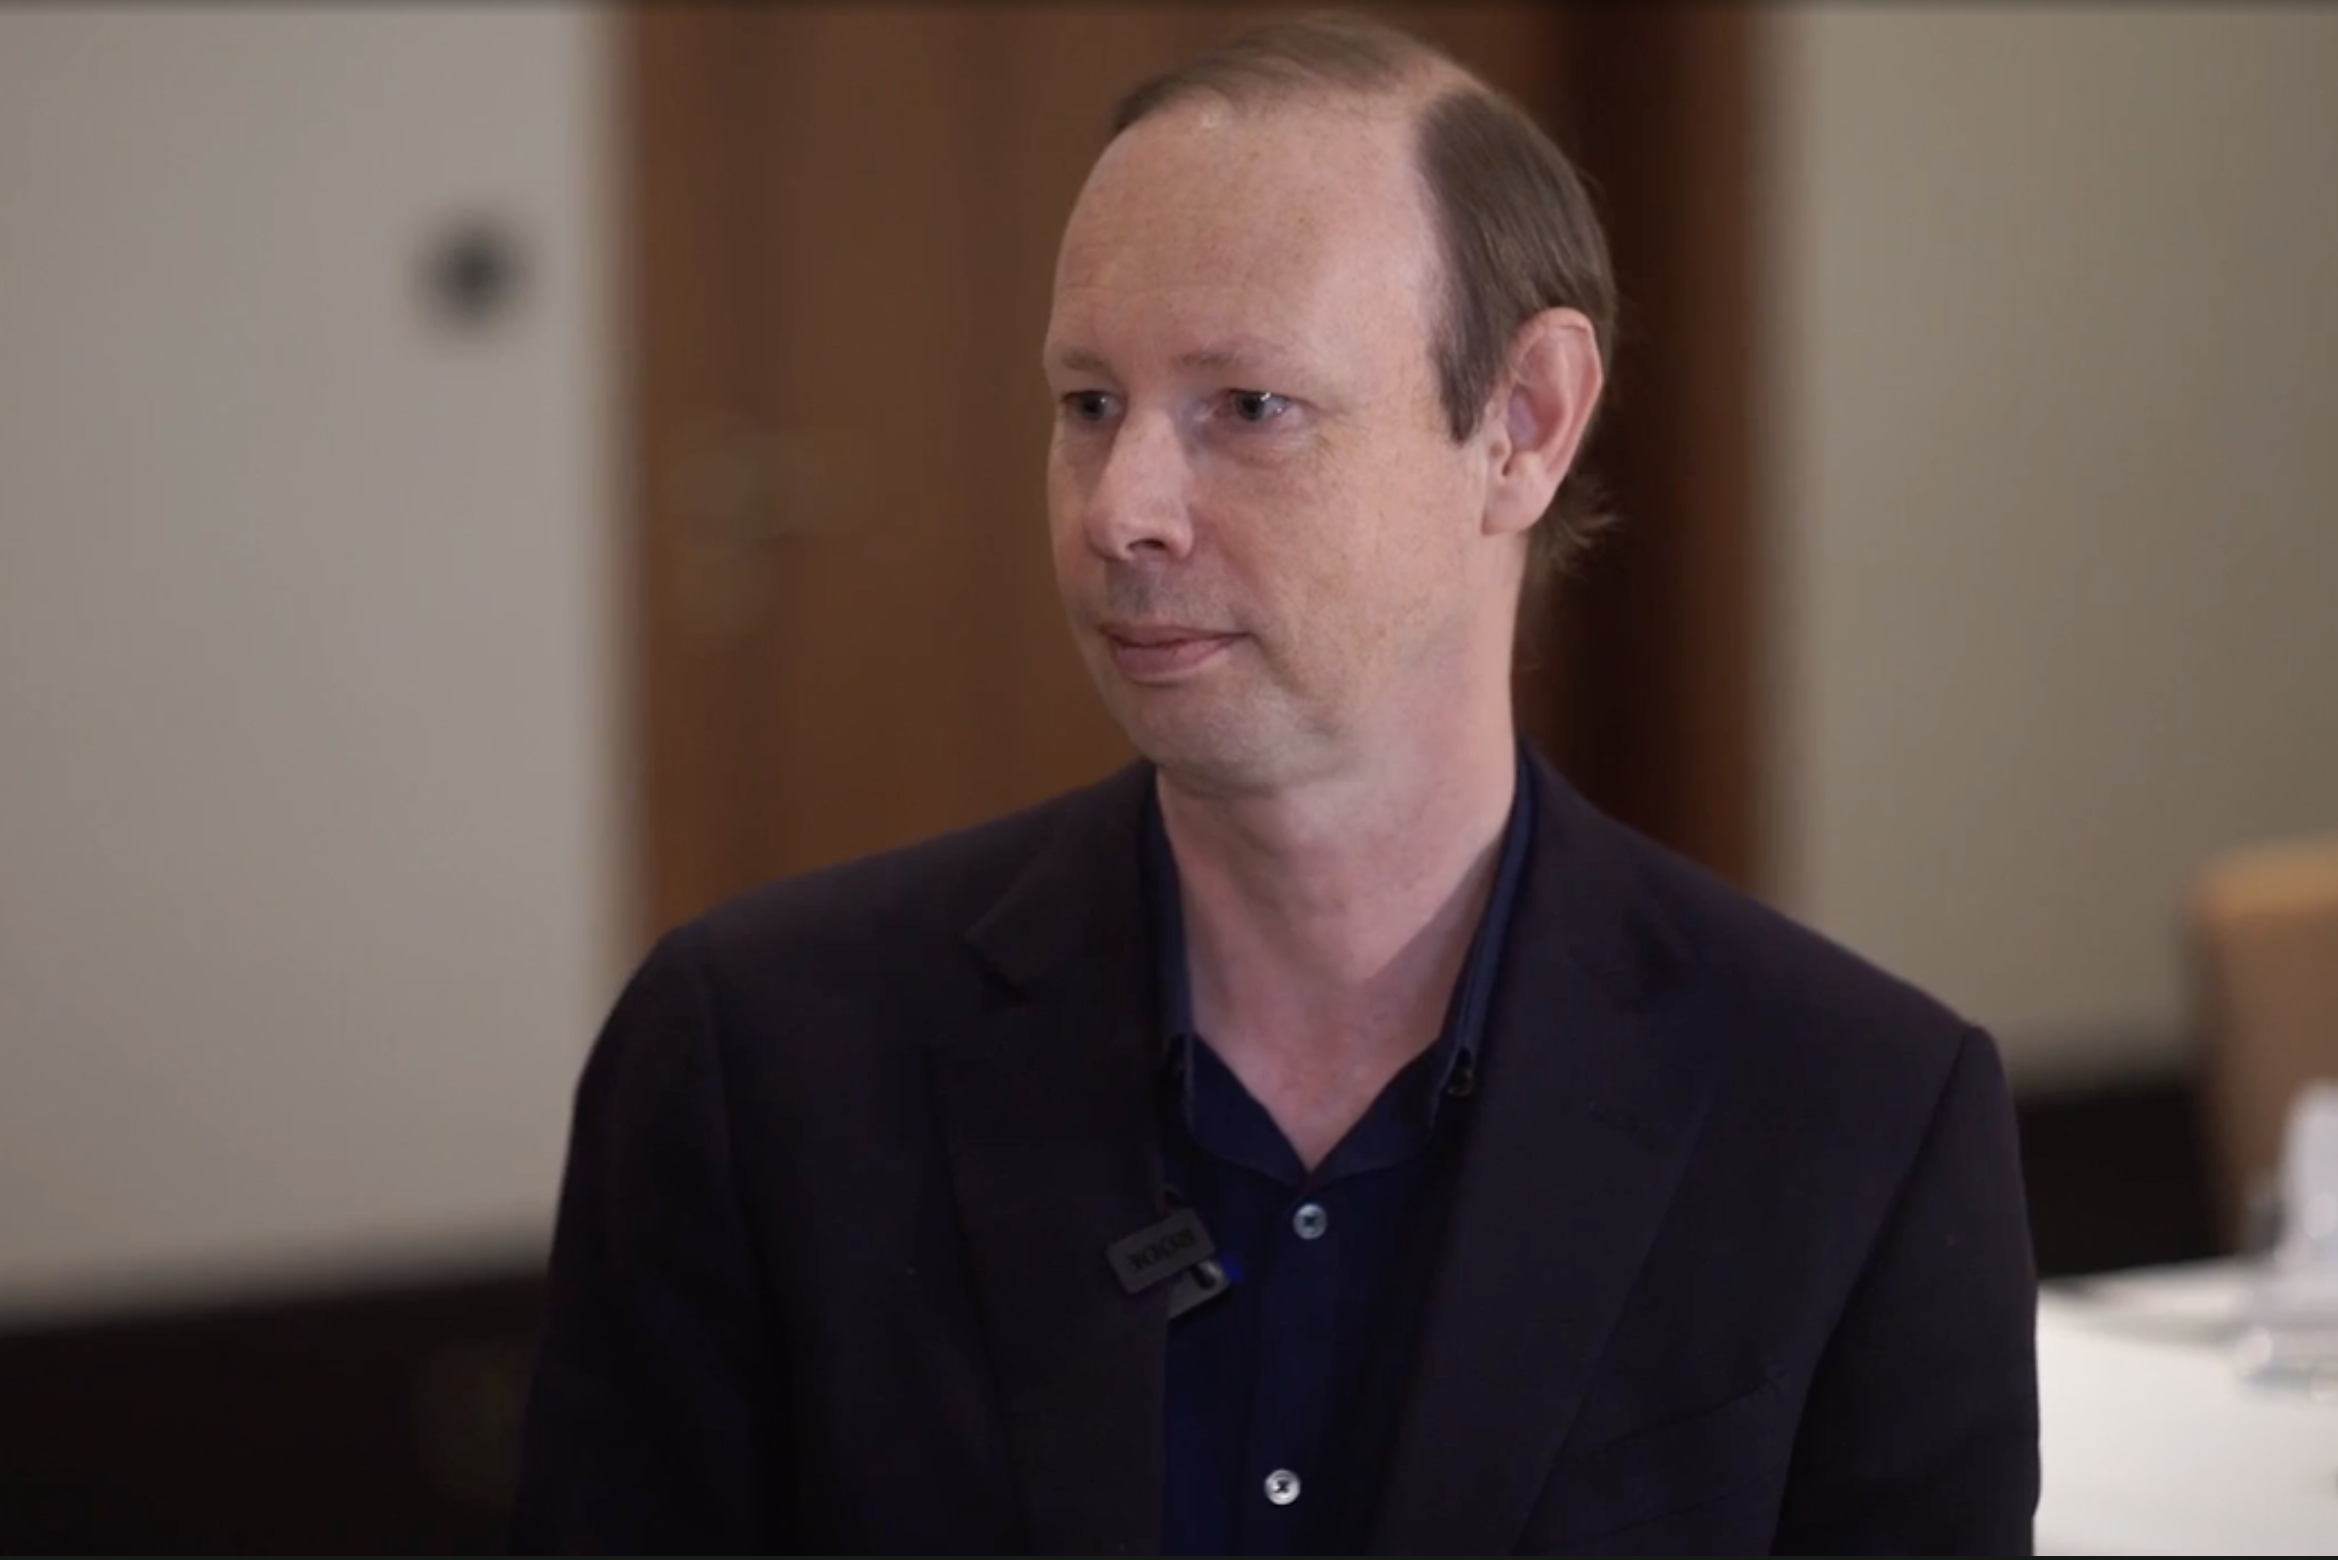 IBM's Andrew Coward, seen here in a video interview from 2018, when he was CEO of Lumina Networks. (Source: Light Reading)